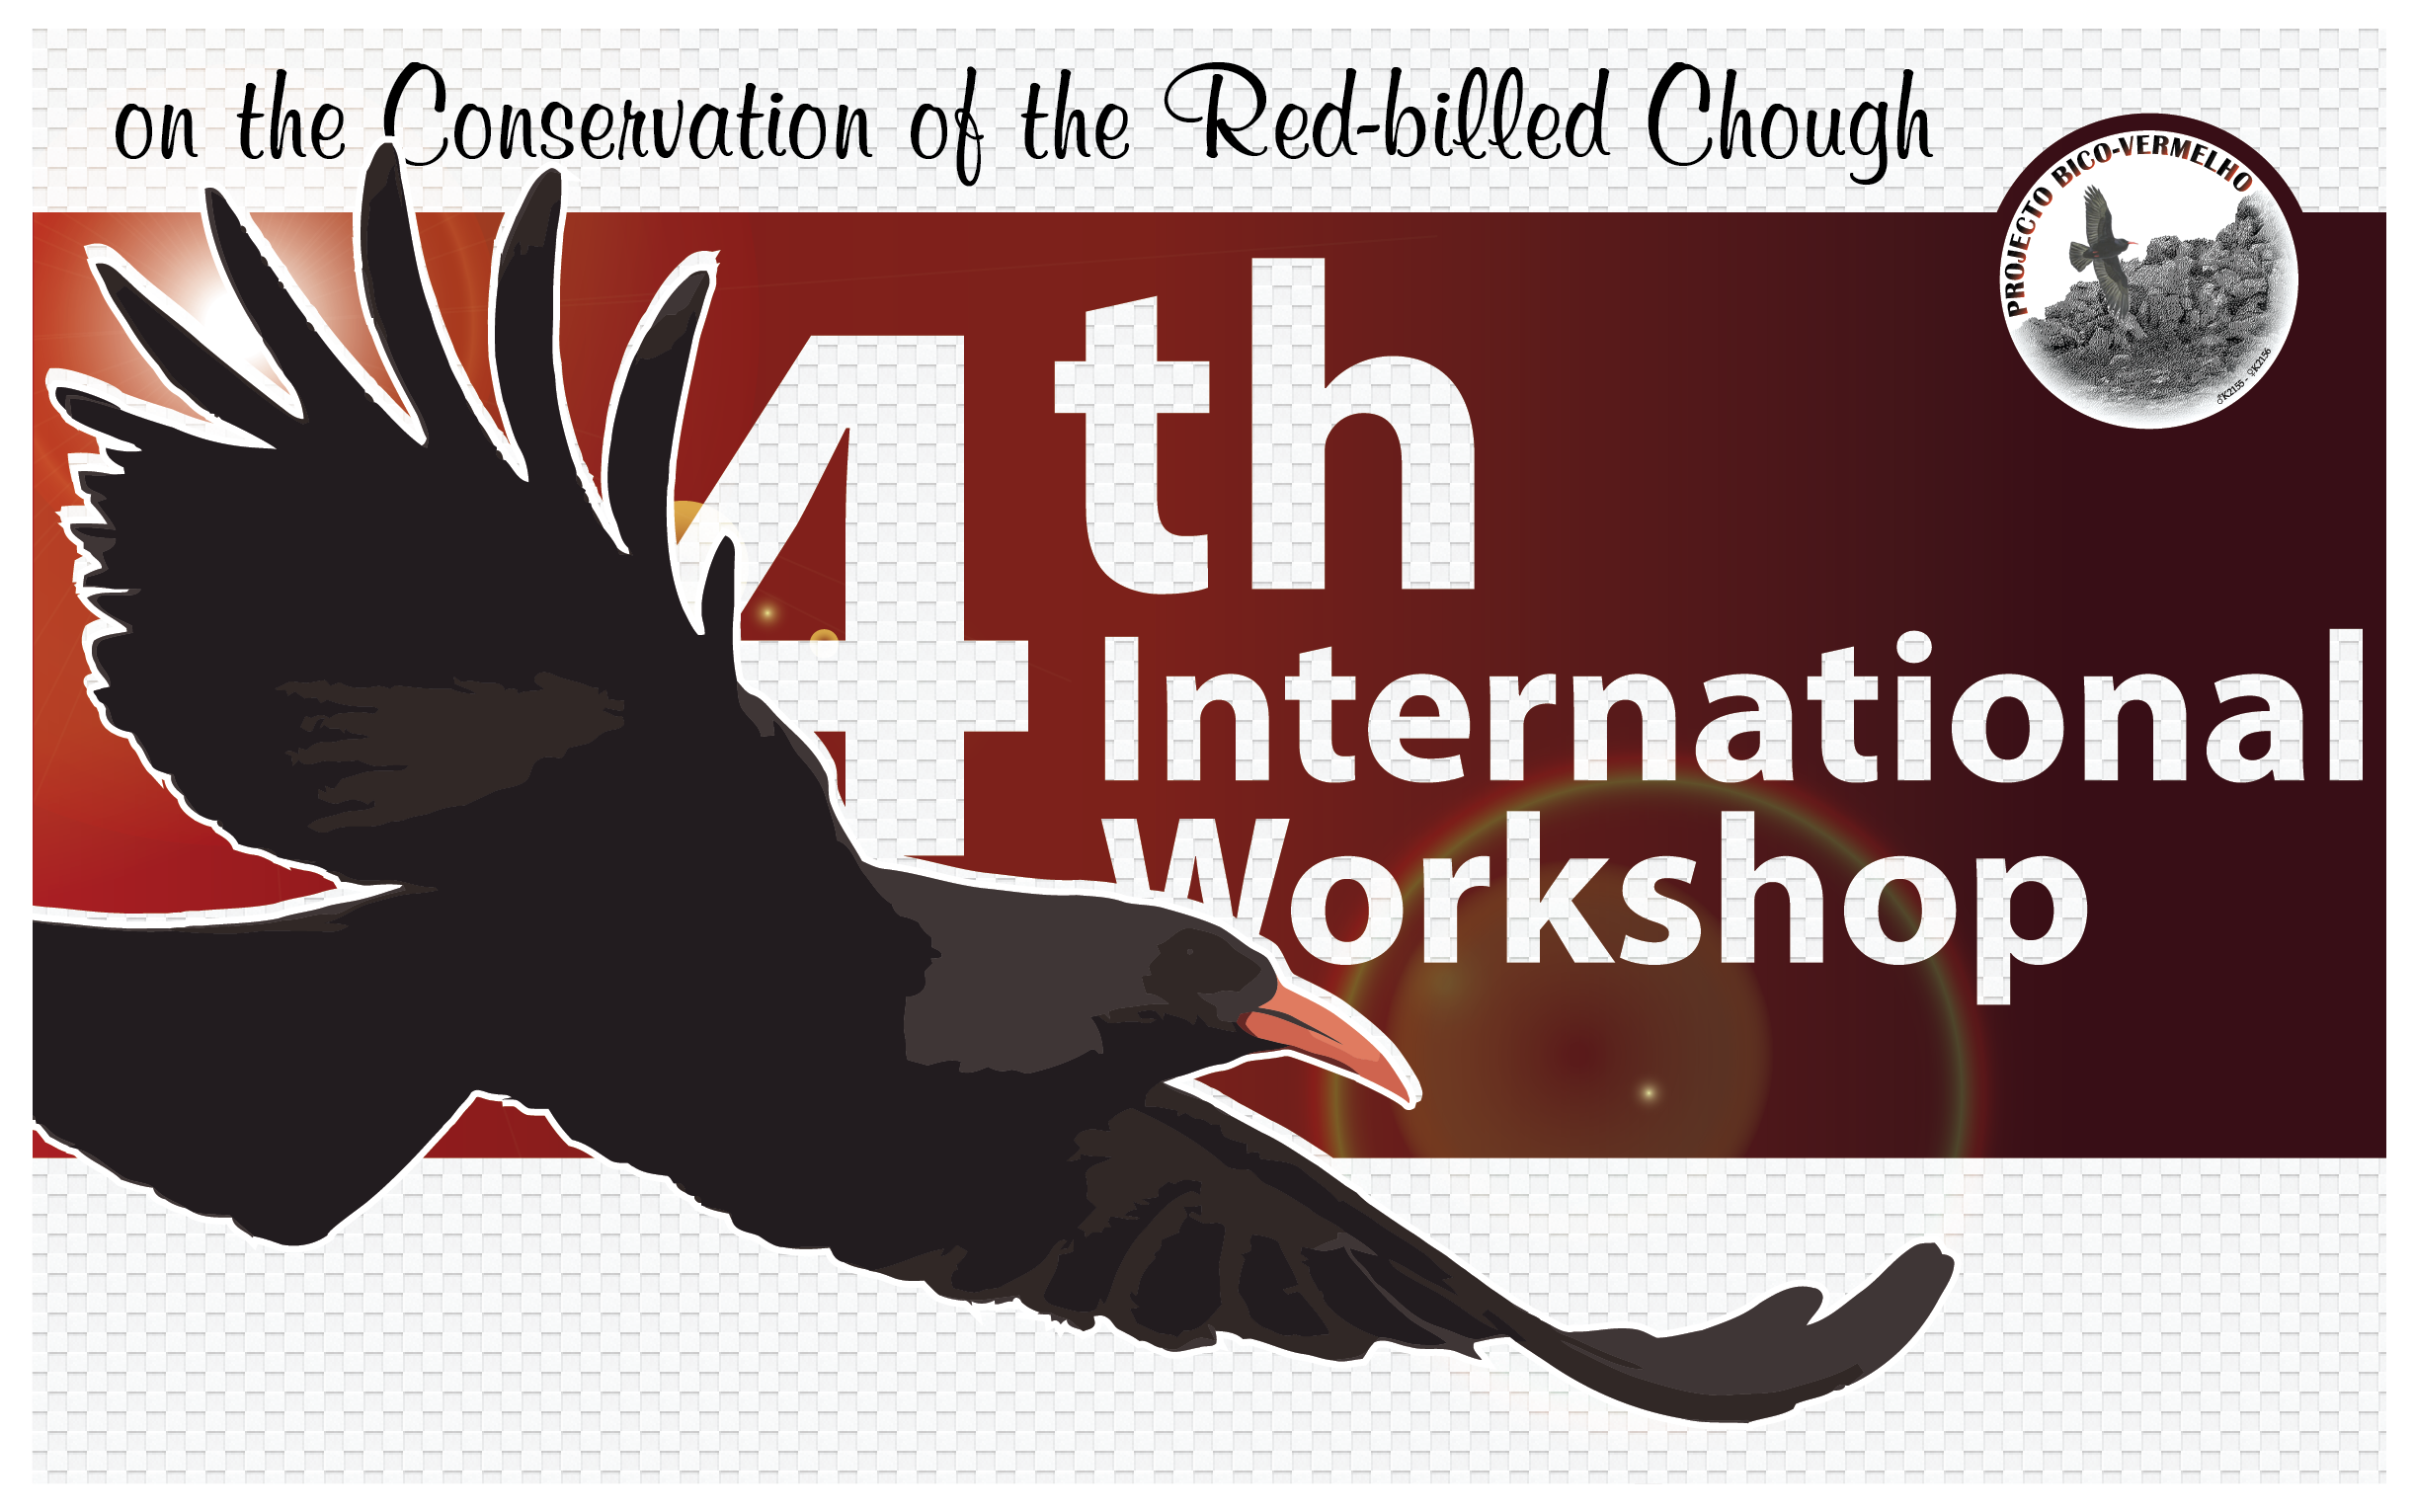 4th International Chough Workshop. Photo by www.diogocarvalho.pt